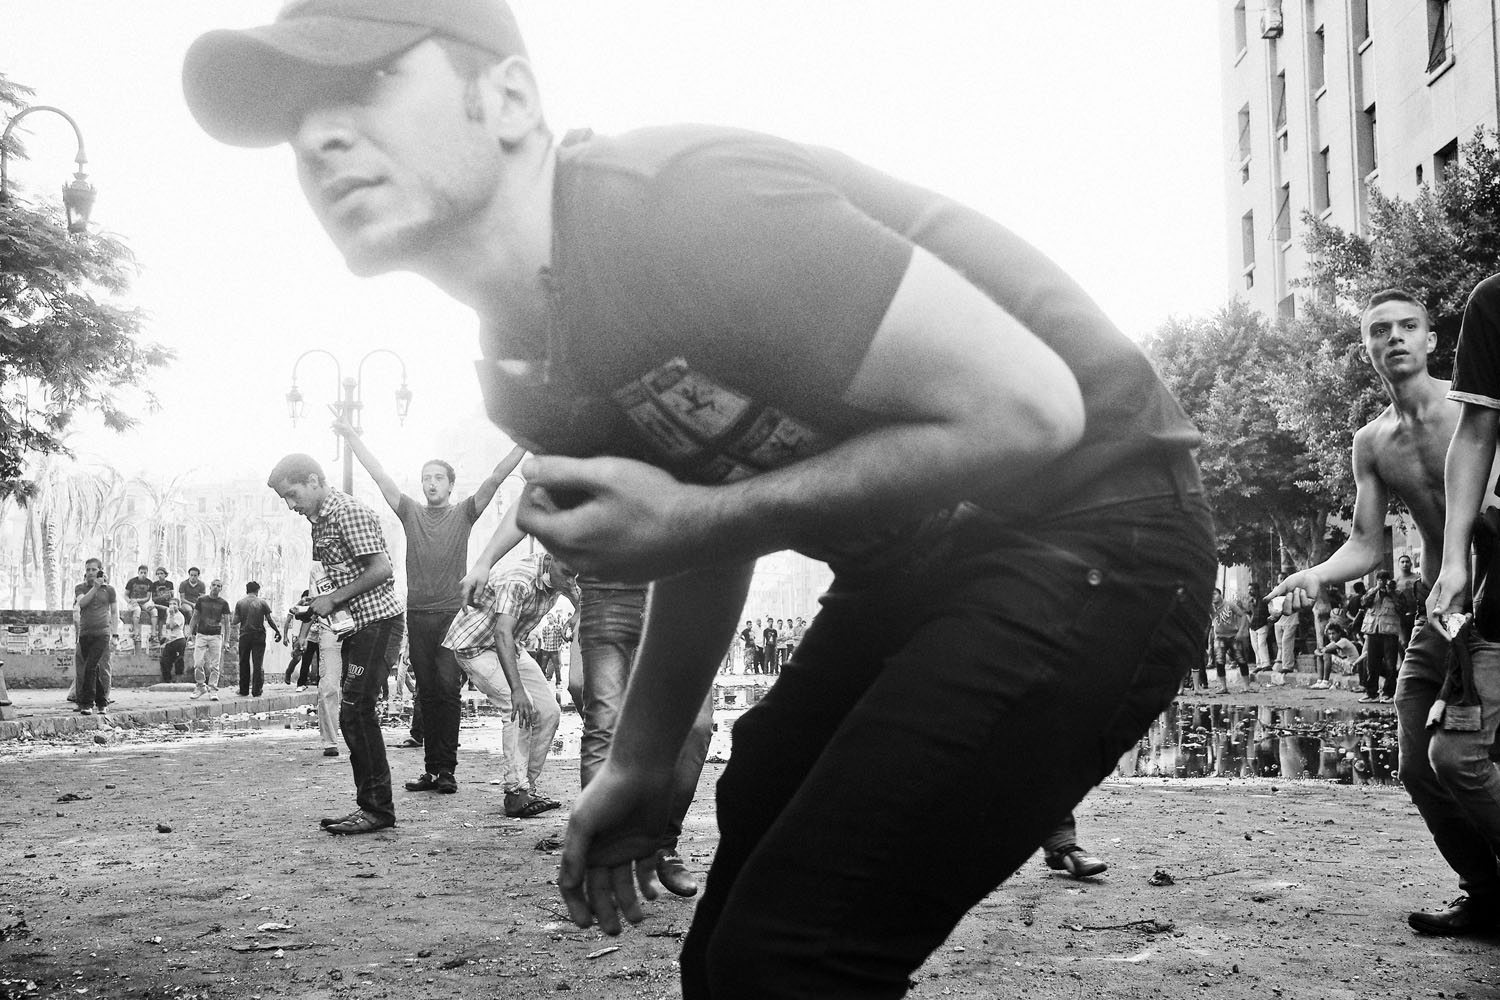 The following photographs were taken on Sept. 13-14, 2012.                               Protestors throw rocks at Egyptian security forces protecting the area near the U.S. Embassy in Cairo.